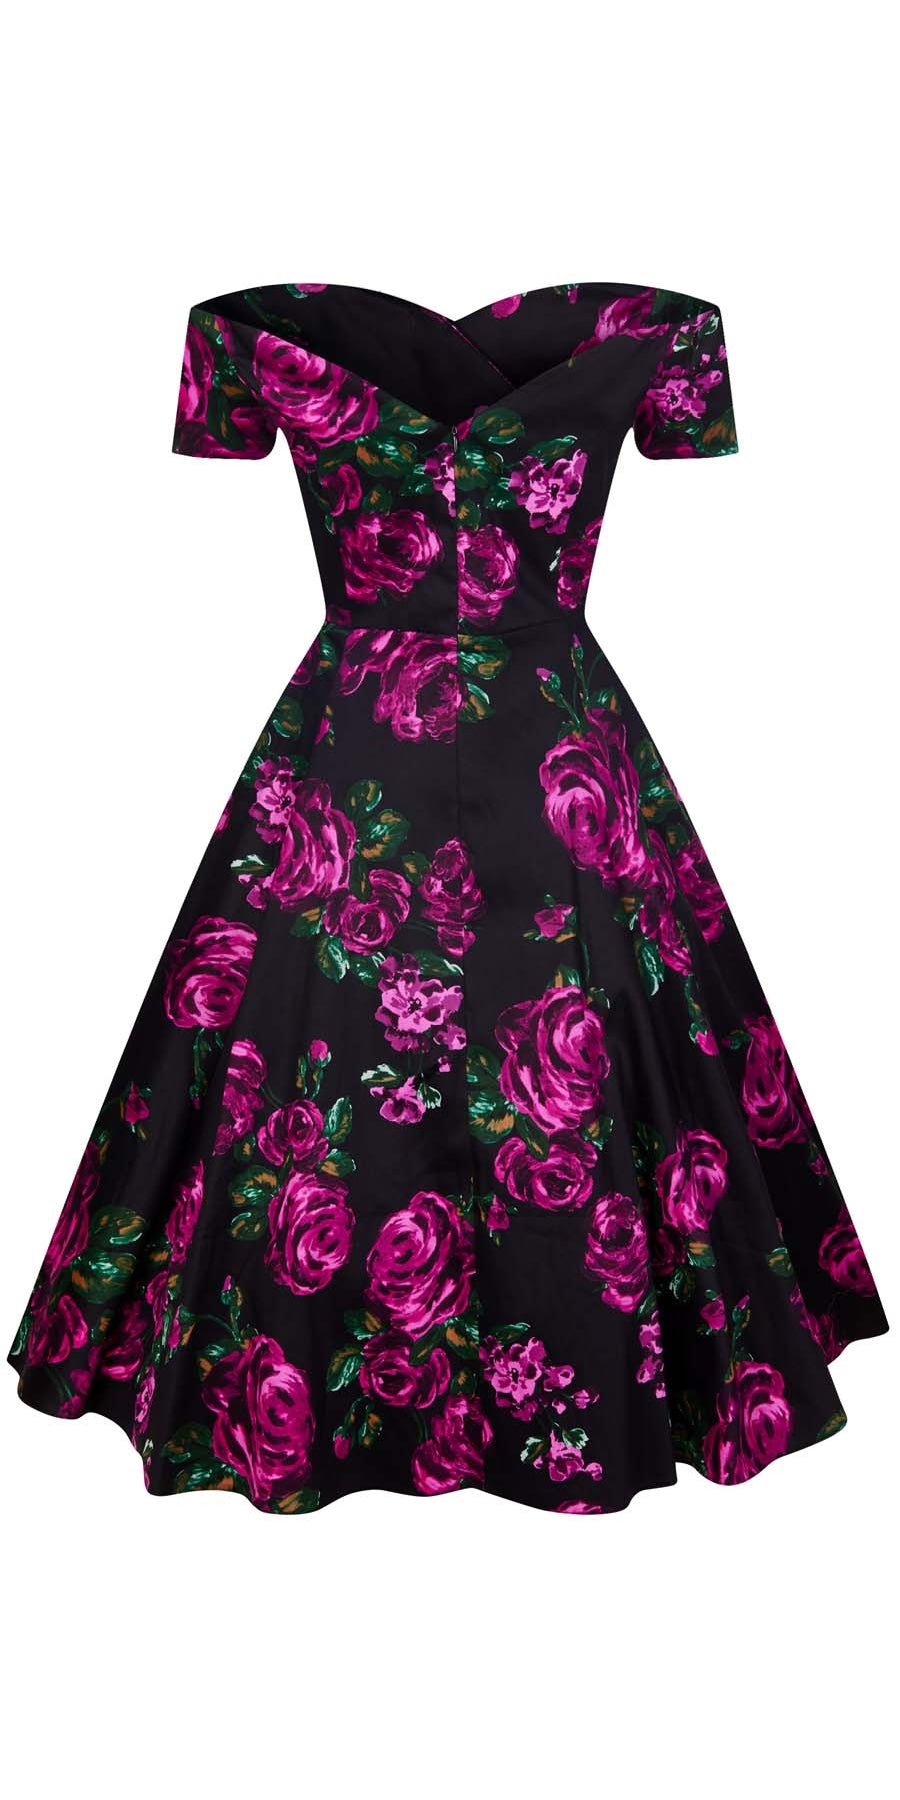 Liliana Violet Rose Bardot Neckline Swing Dress